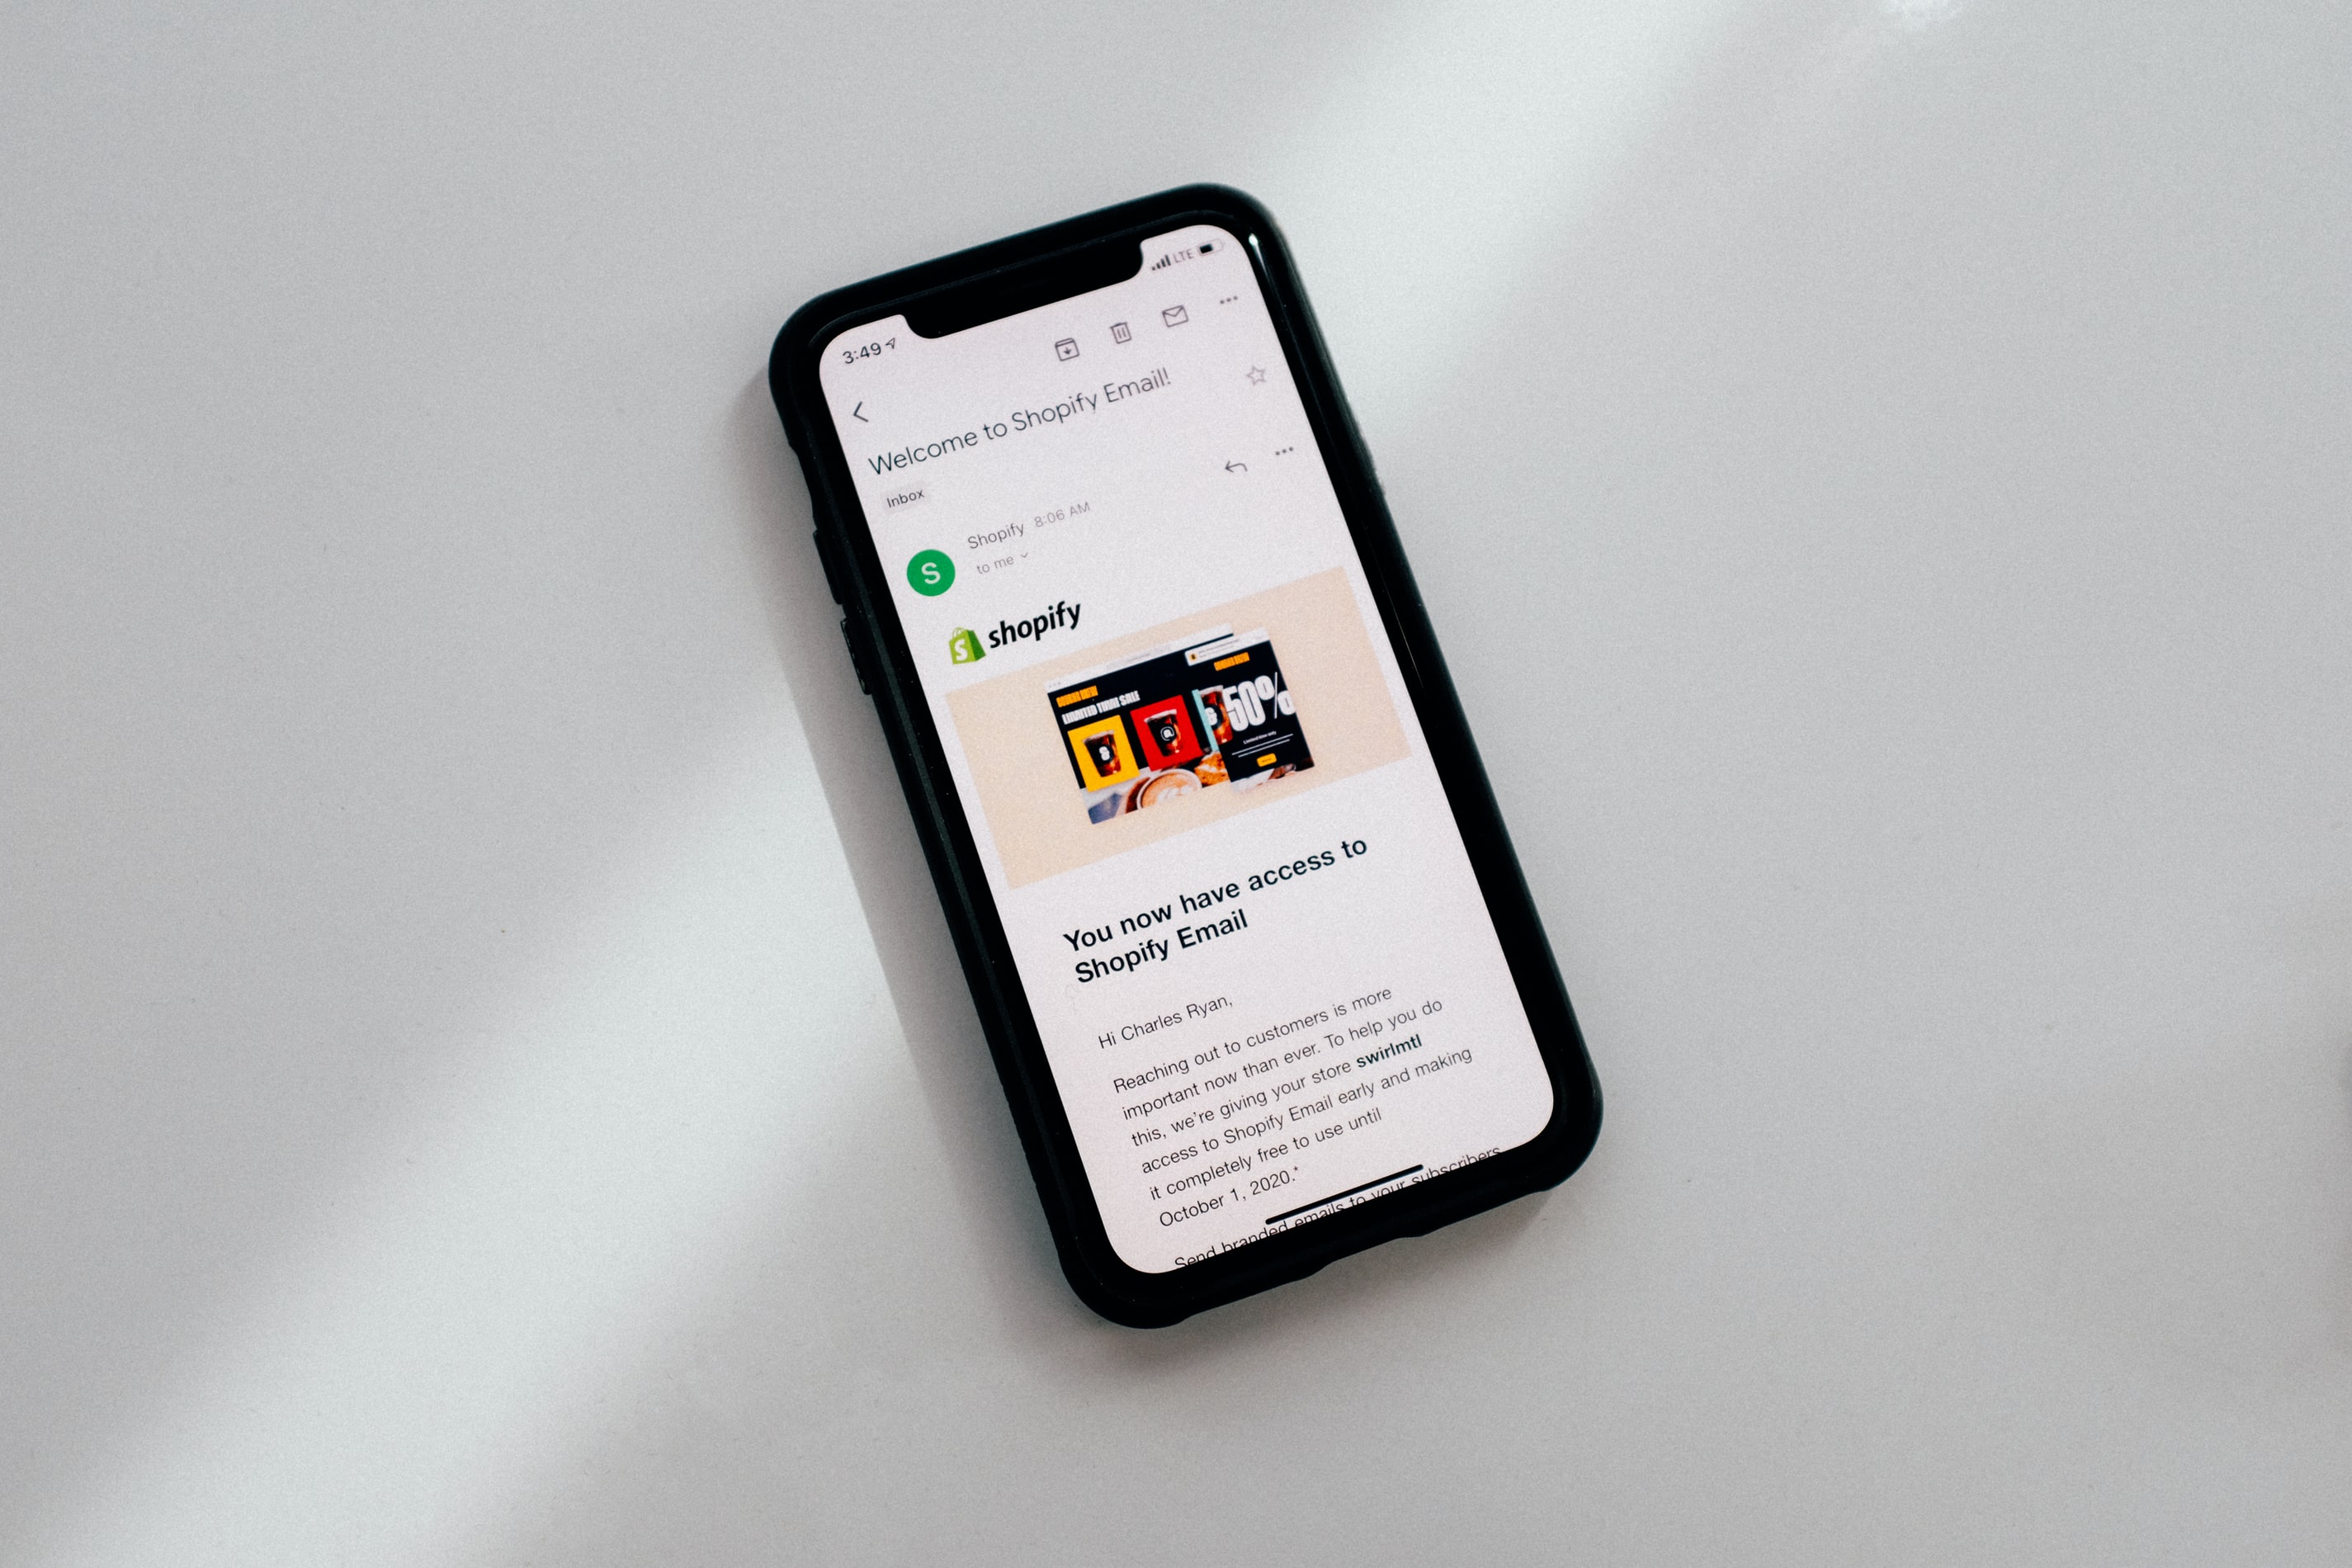 iPhone and shopify email